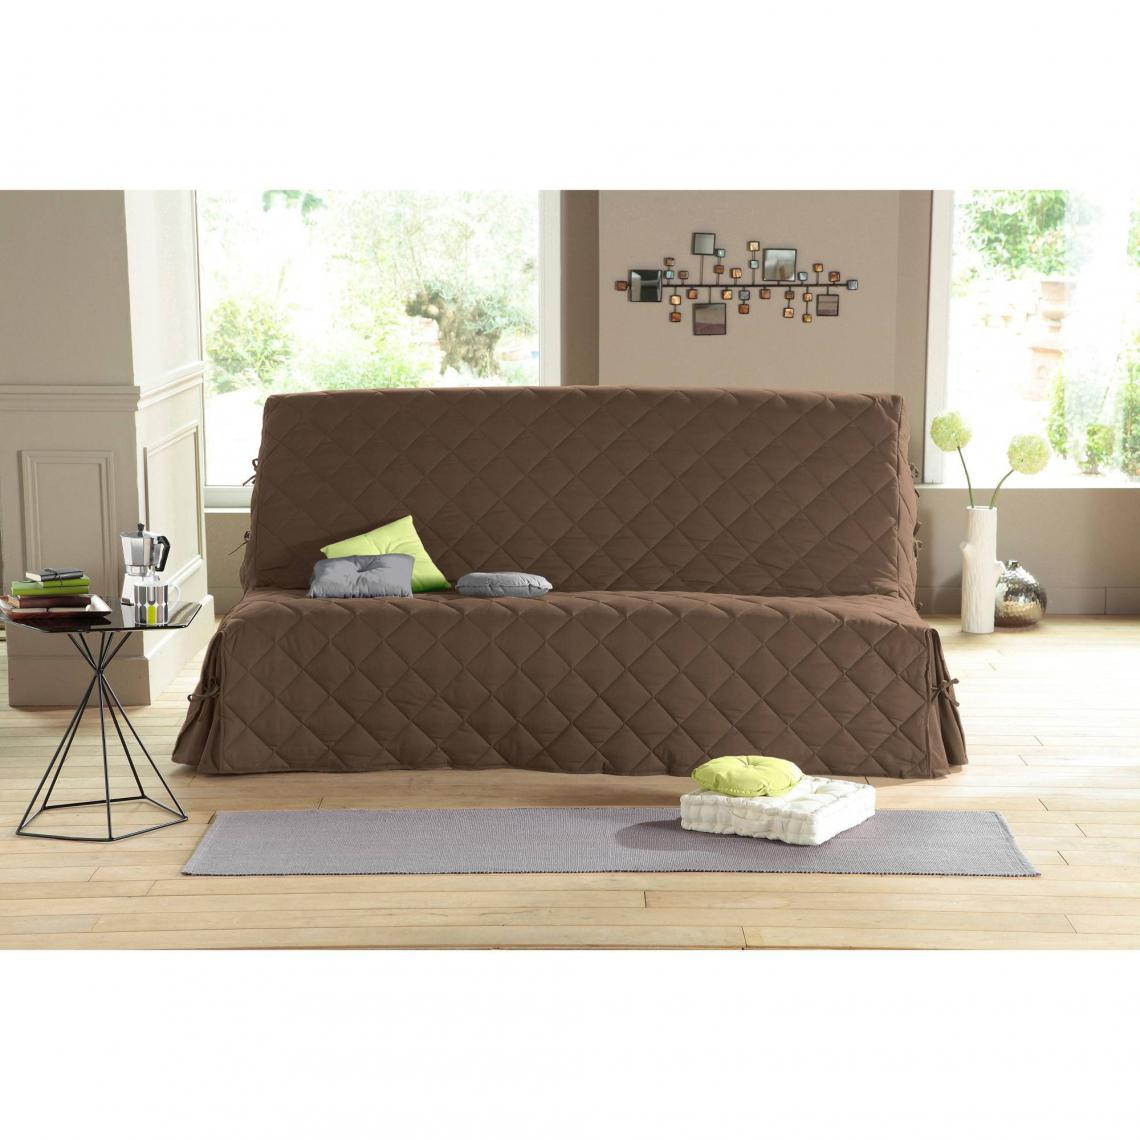 Housse clic clac int grale matelass e tirable tertio antitache taupe 3 suisses for Clic clac housse matelassee